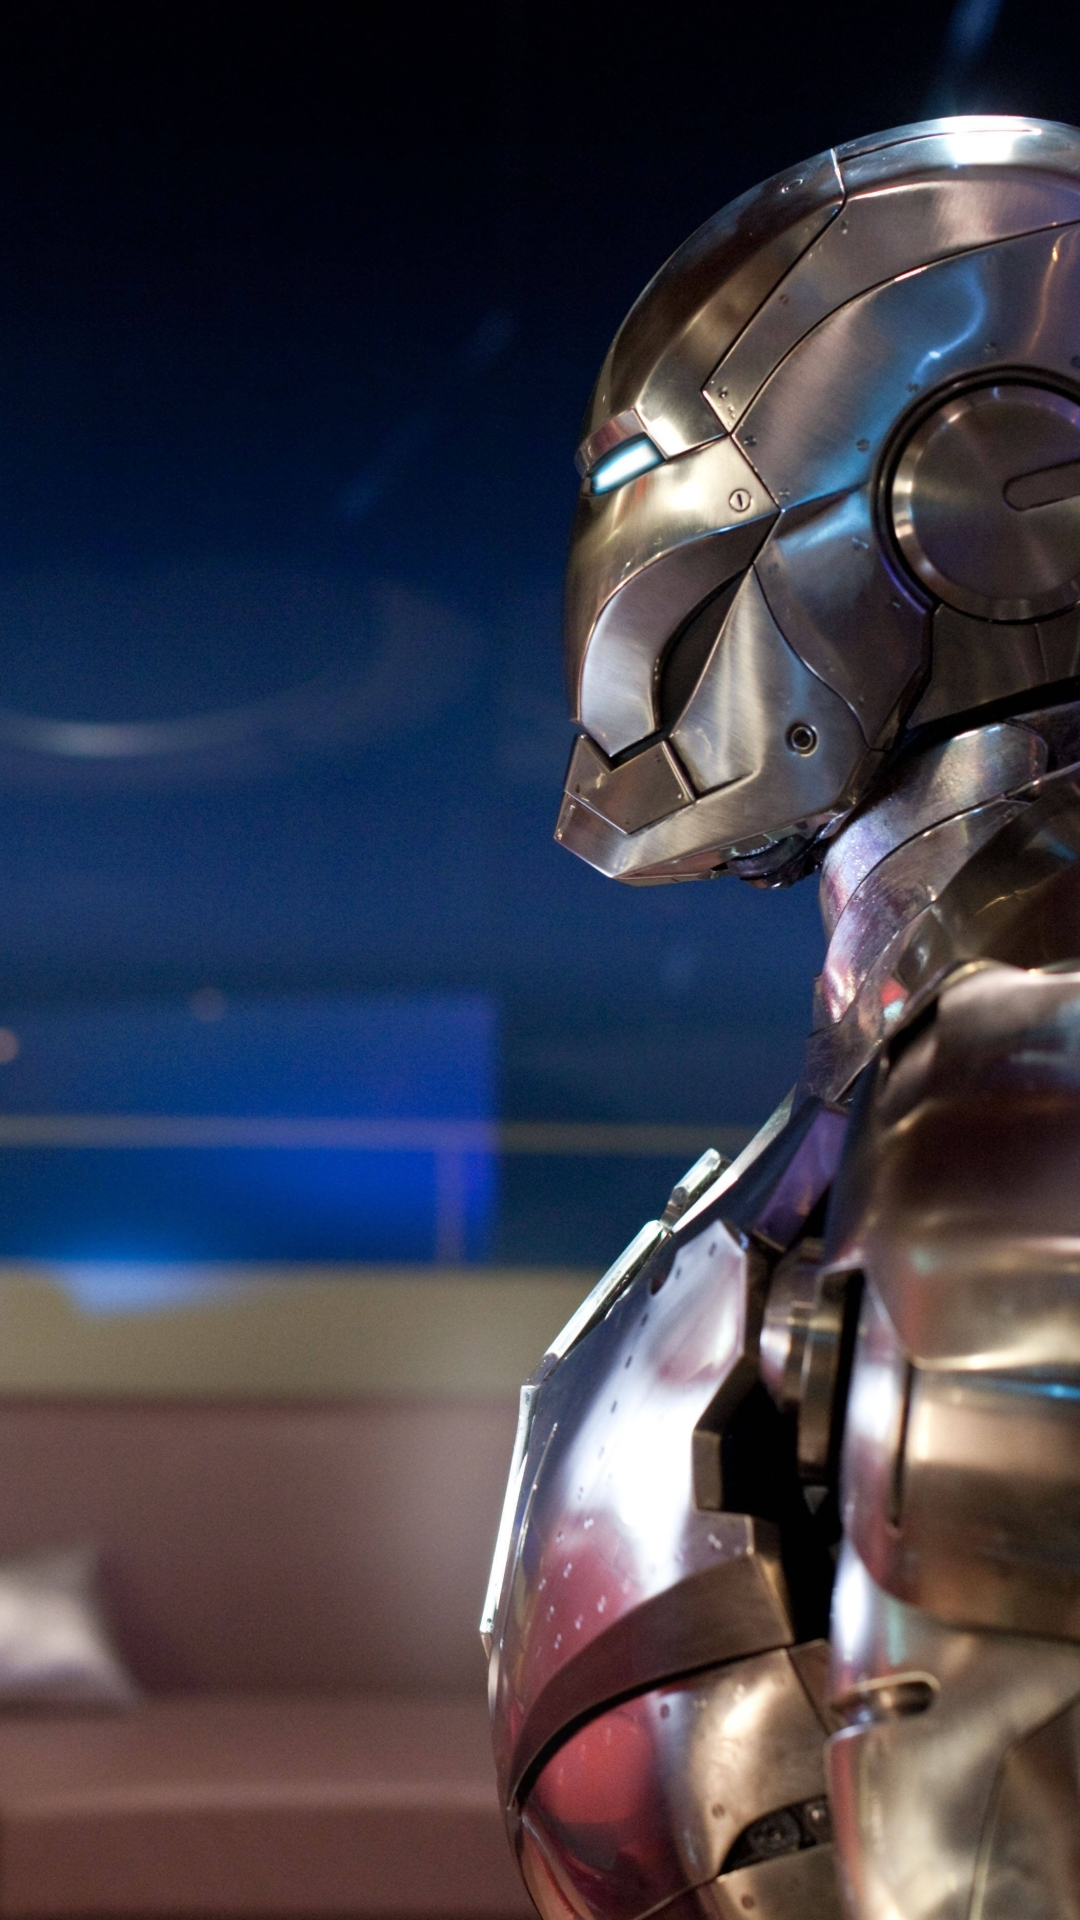 Hd Wallpapers Love Quotes Sad Iron Mans Armor Mark I Iphone Wallpaper Iphone Wallpapers